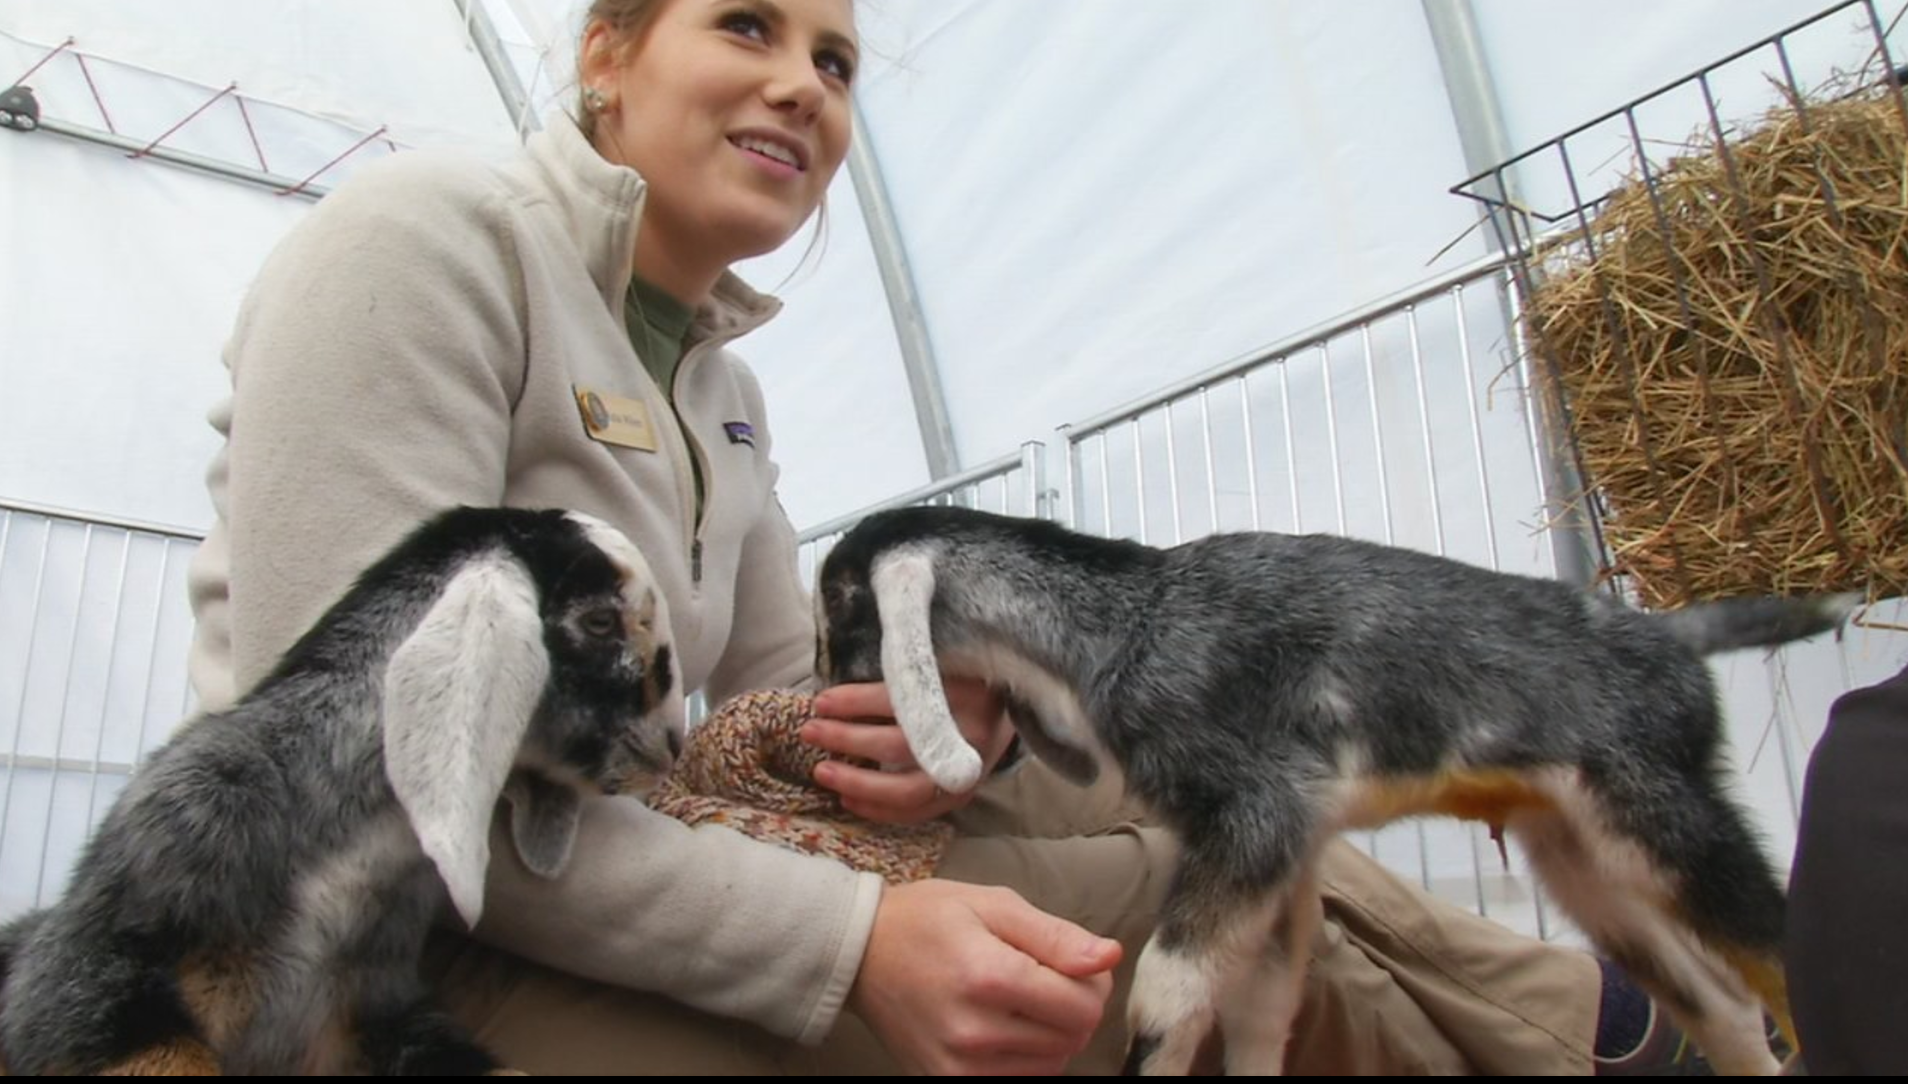 Our New Neighbors! - Two new baby goats at Carl Sandburg Home